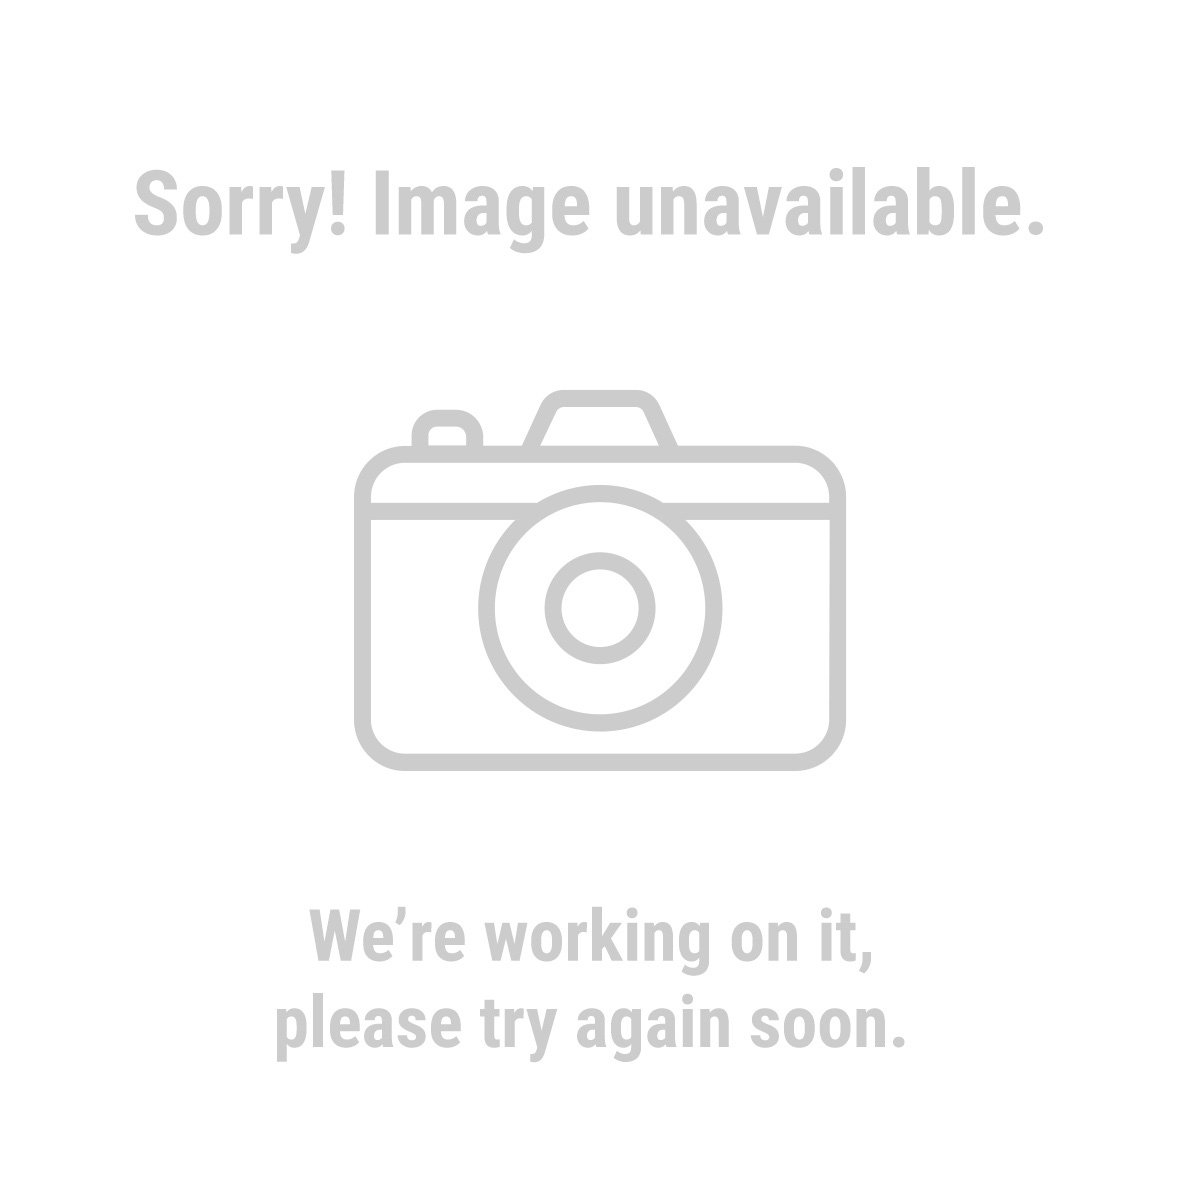 Admiral 62724 10 in. 80T Fine Cut Circular Saw Blade